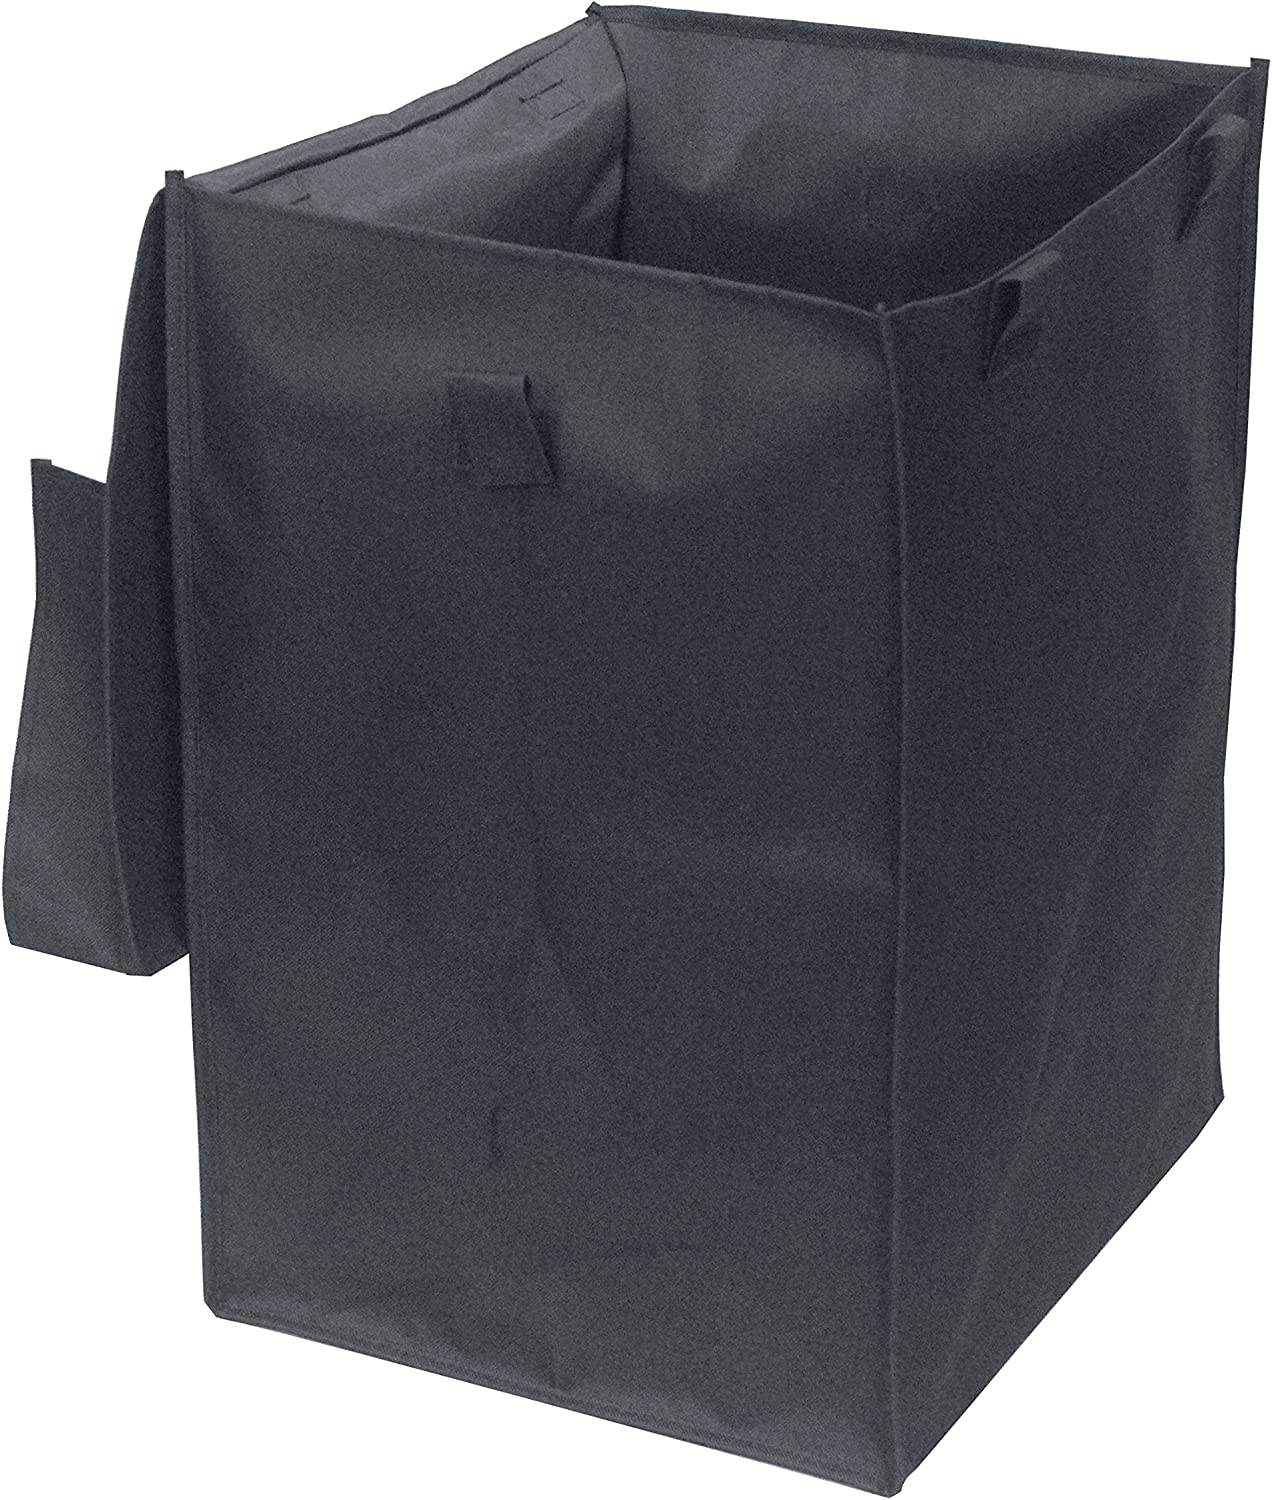 Wellmax WM99504 Nylon Grocery Utility Shopping Cart Liner with Lid, Black, Made Exclusively for WM99024S